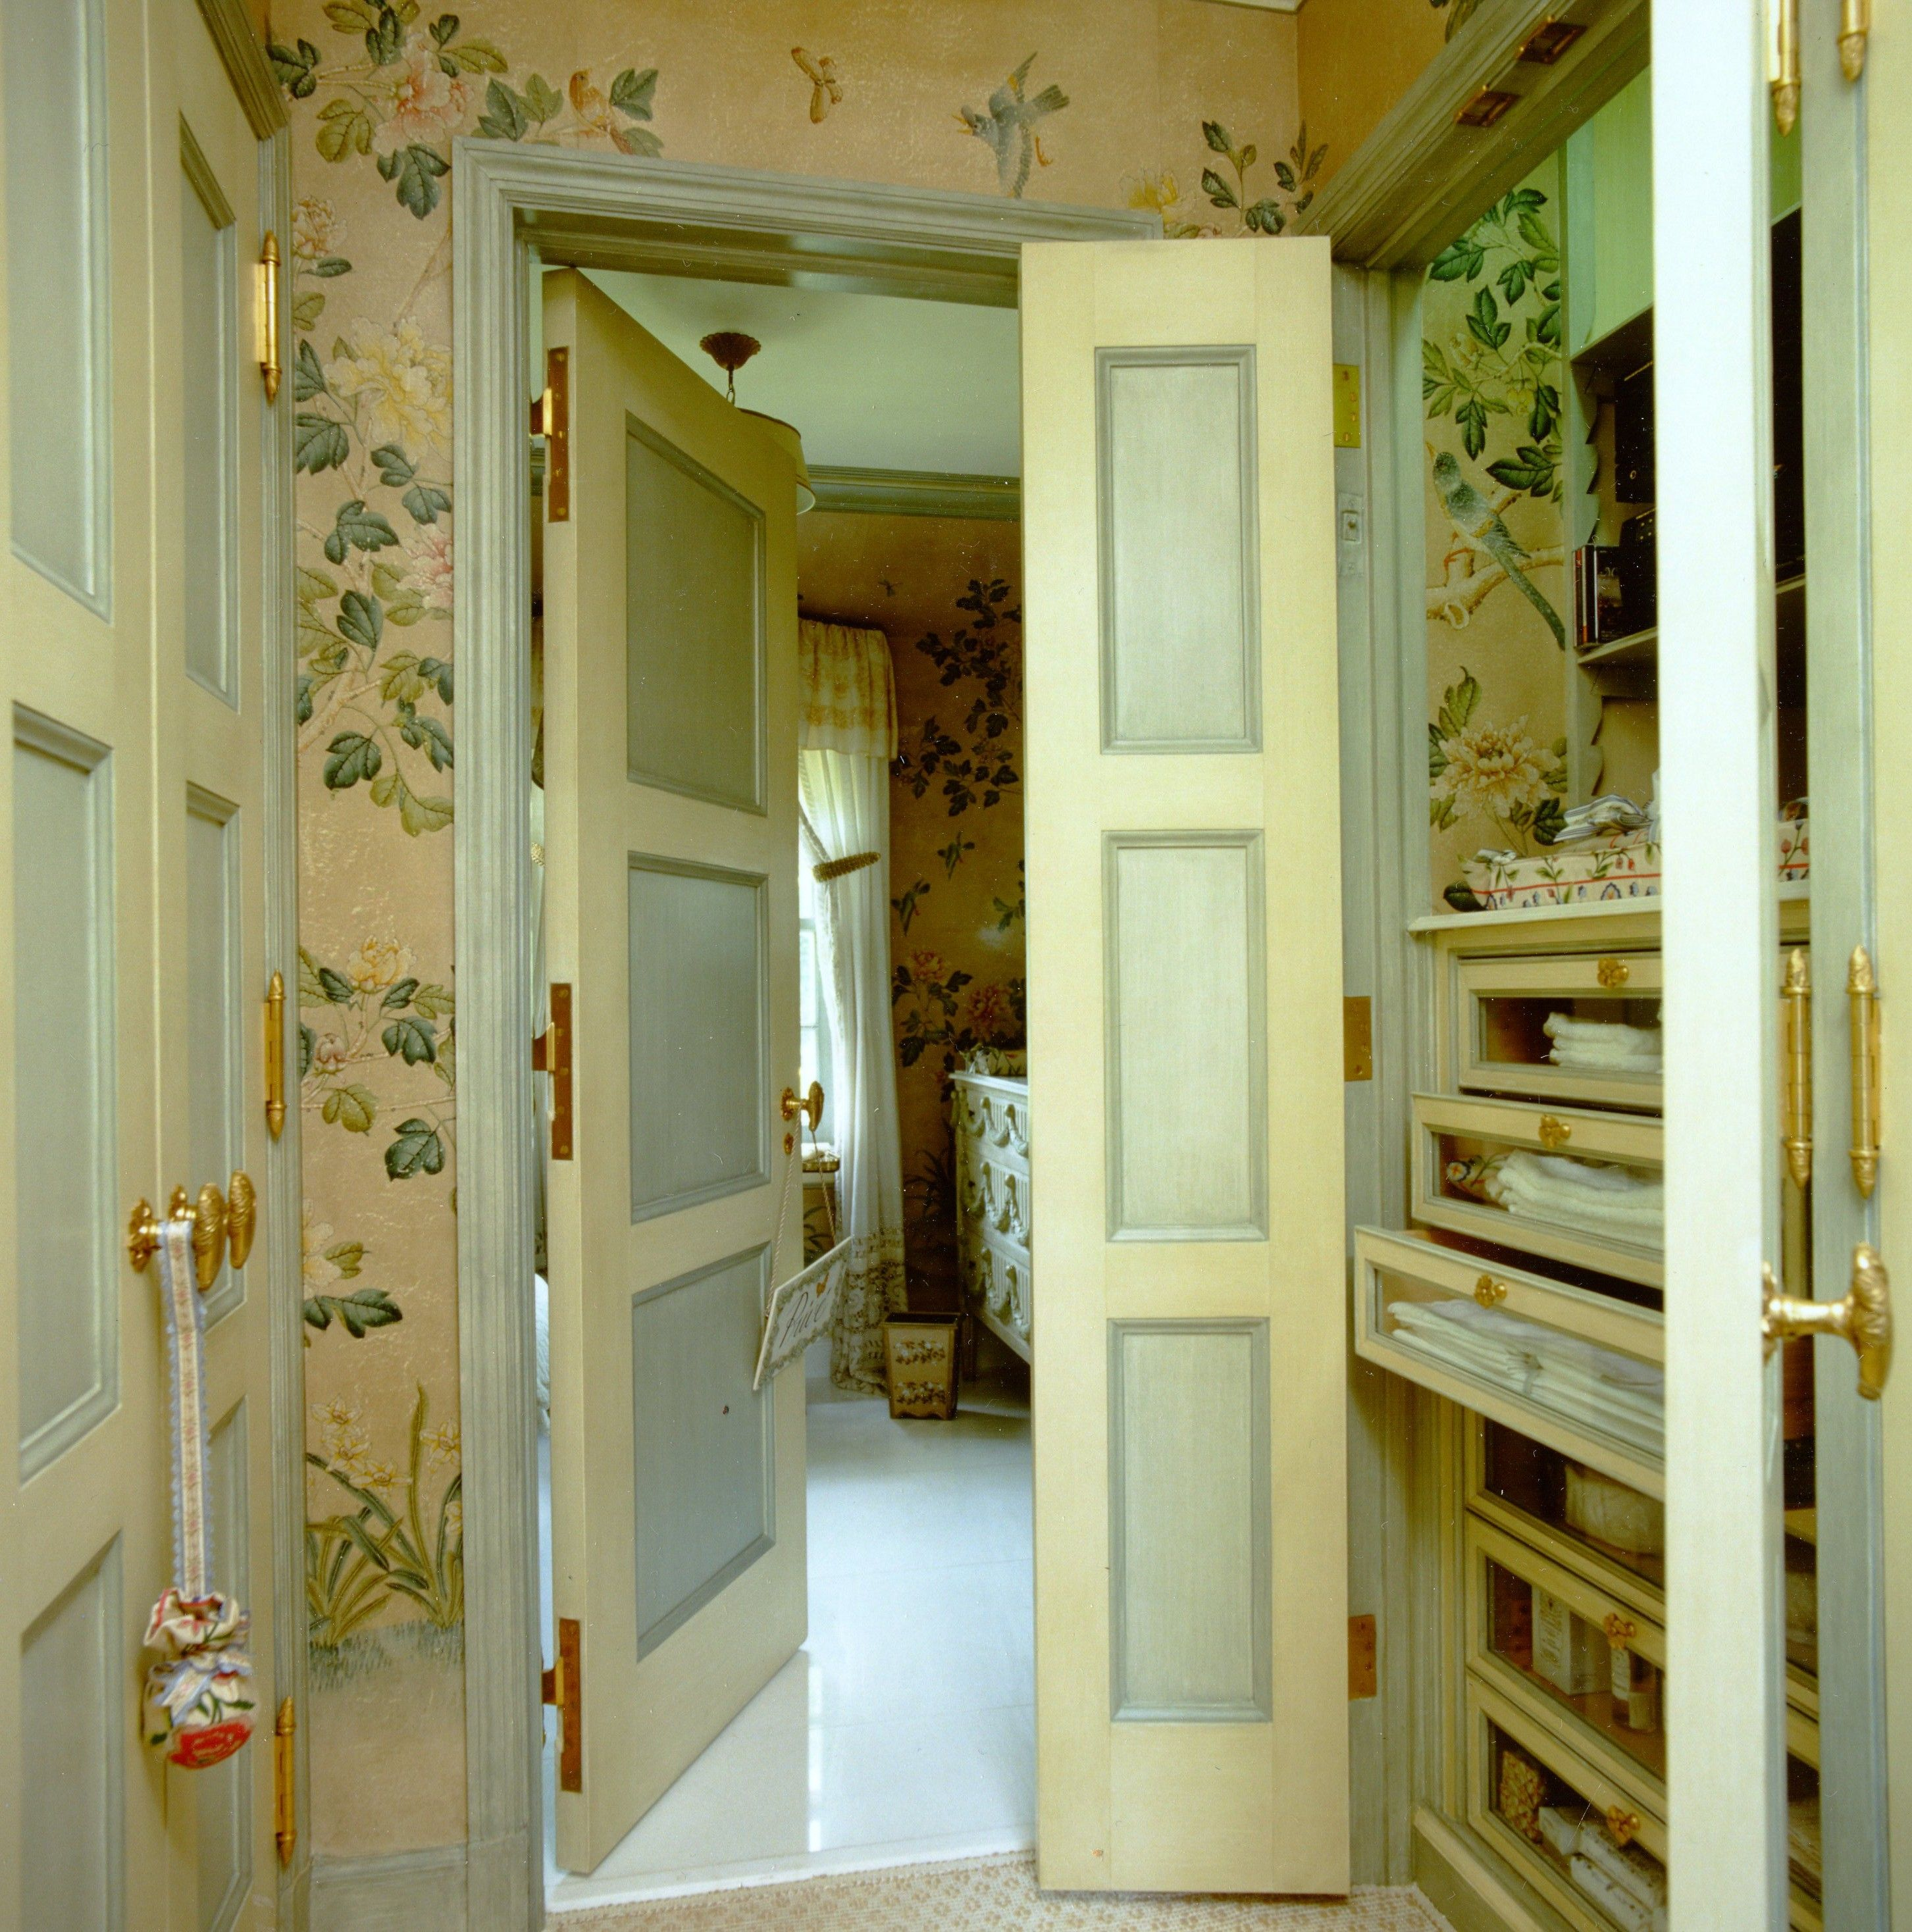 A vestibule leading to a guest bathroom was turned into